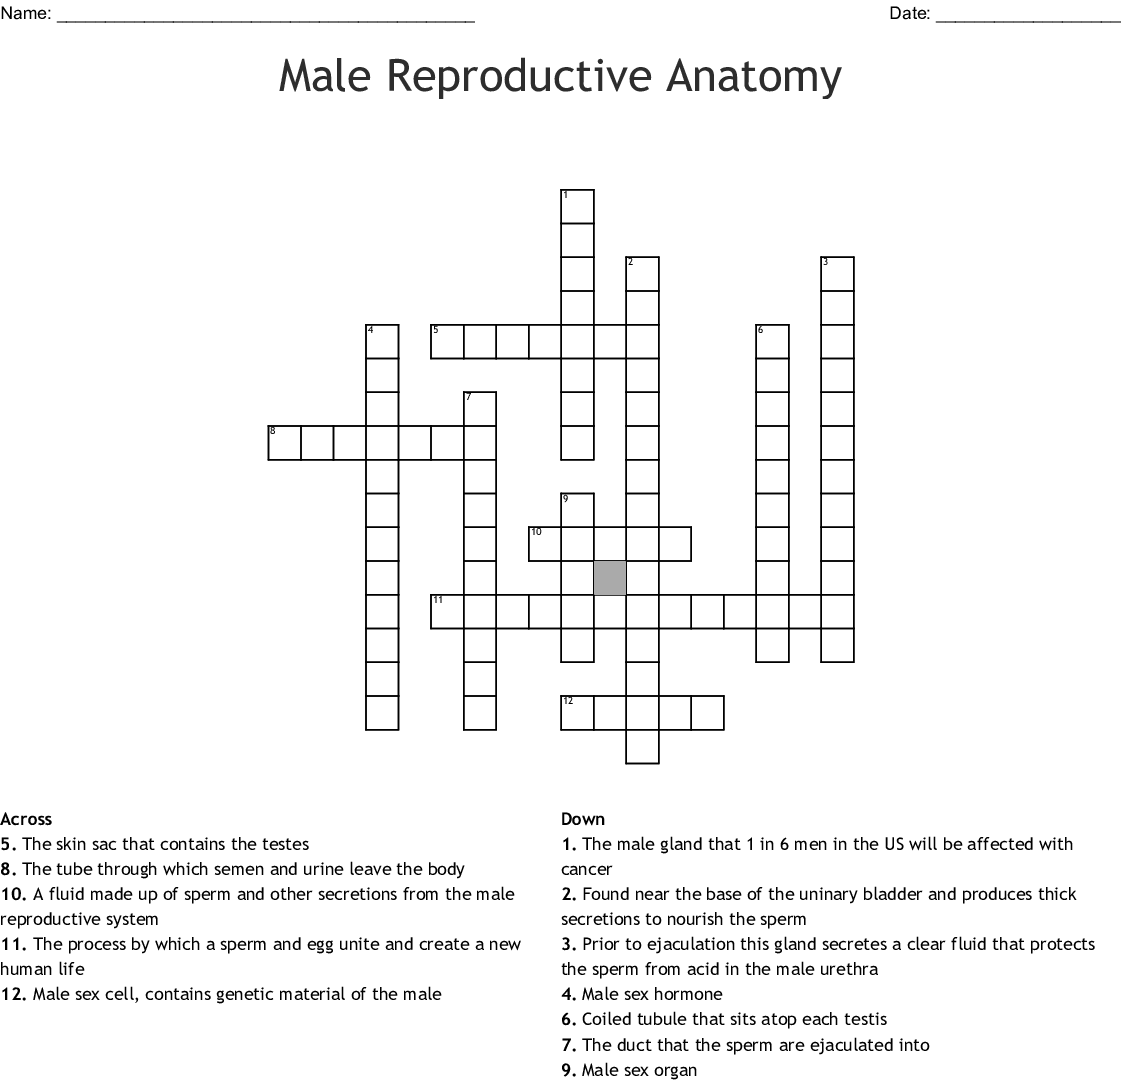 Male Reproductive Anatomy Crossword Wordmint